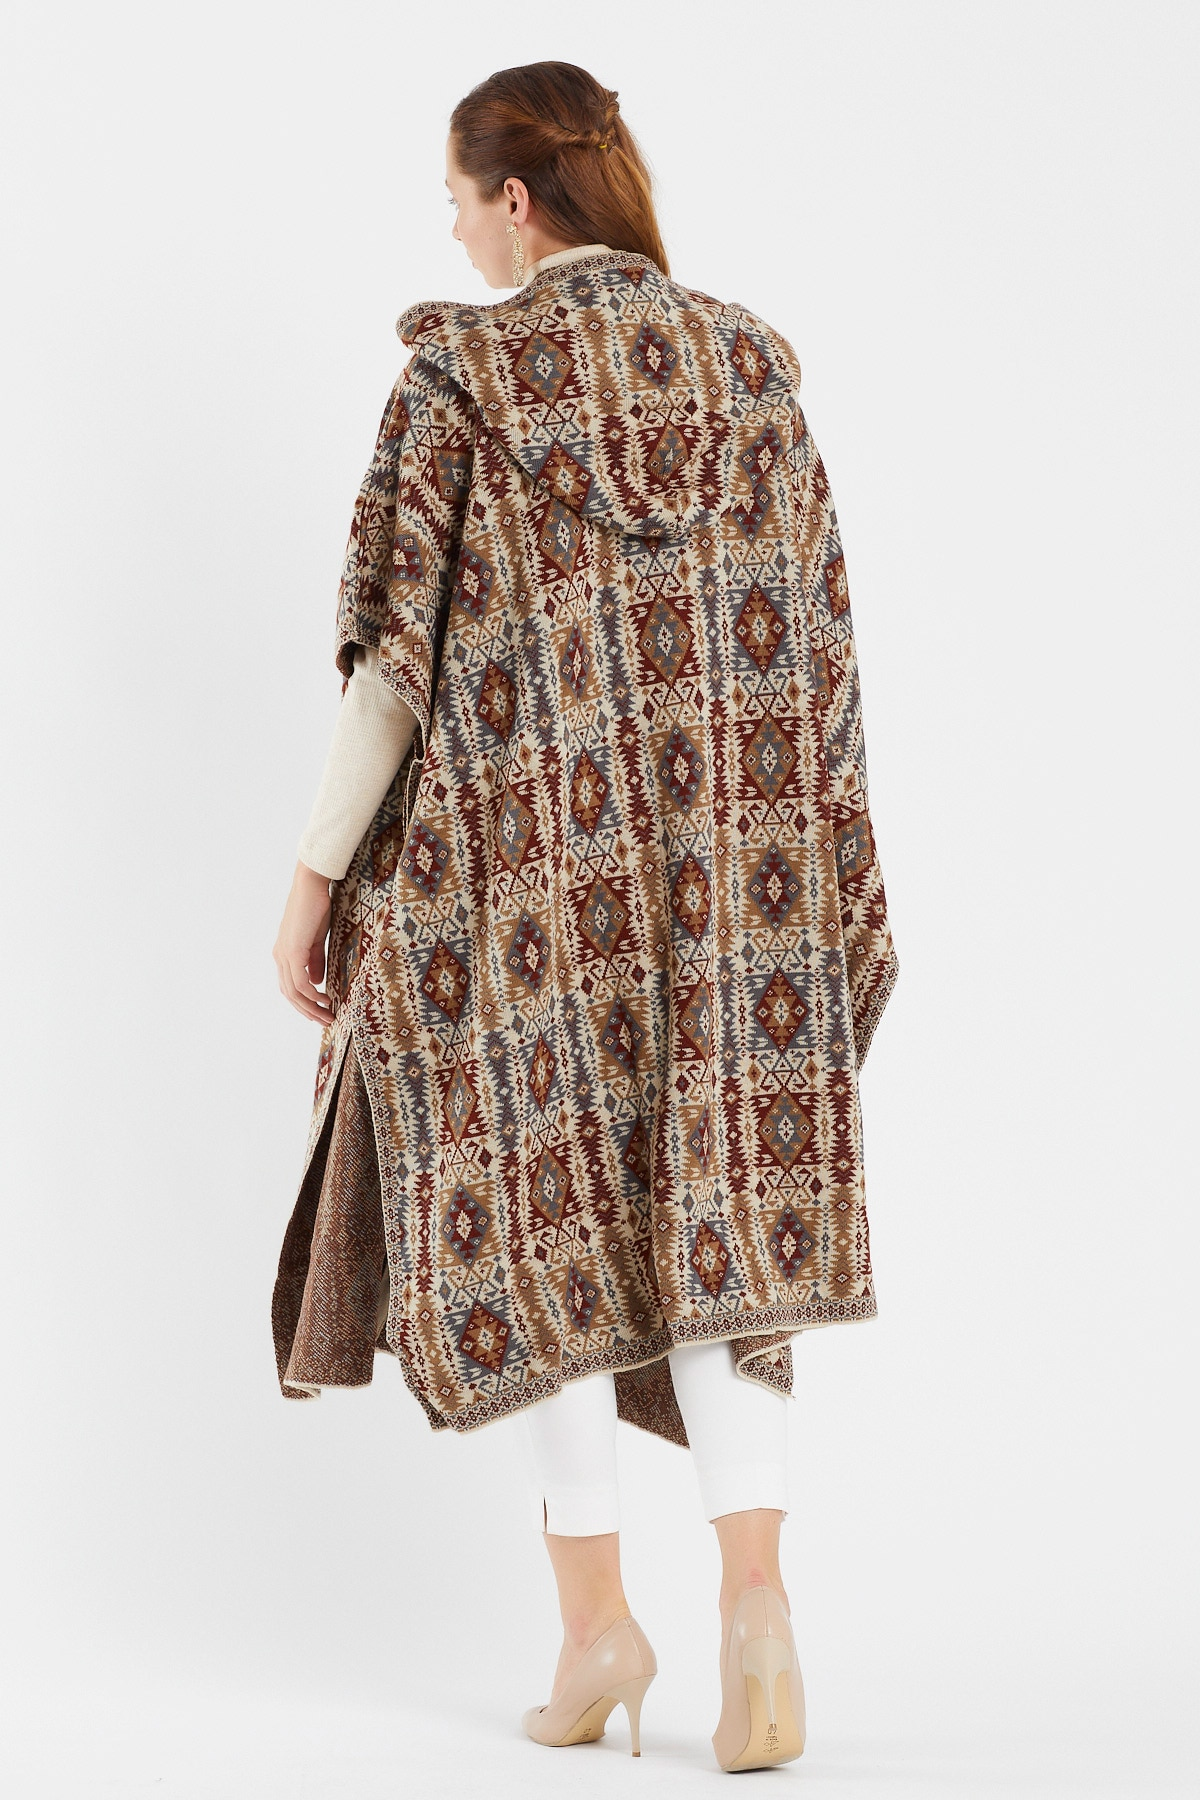 Women's S dress top hawl Wrap Knitted capes and Poncho – Oversized hoodie Cardigan  Open Front Tassel Cape for Winter enlarge